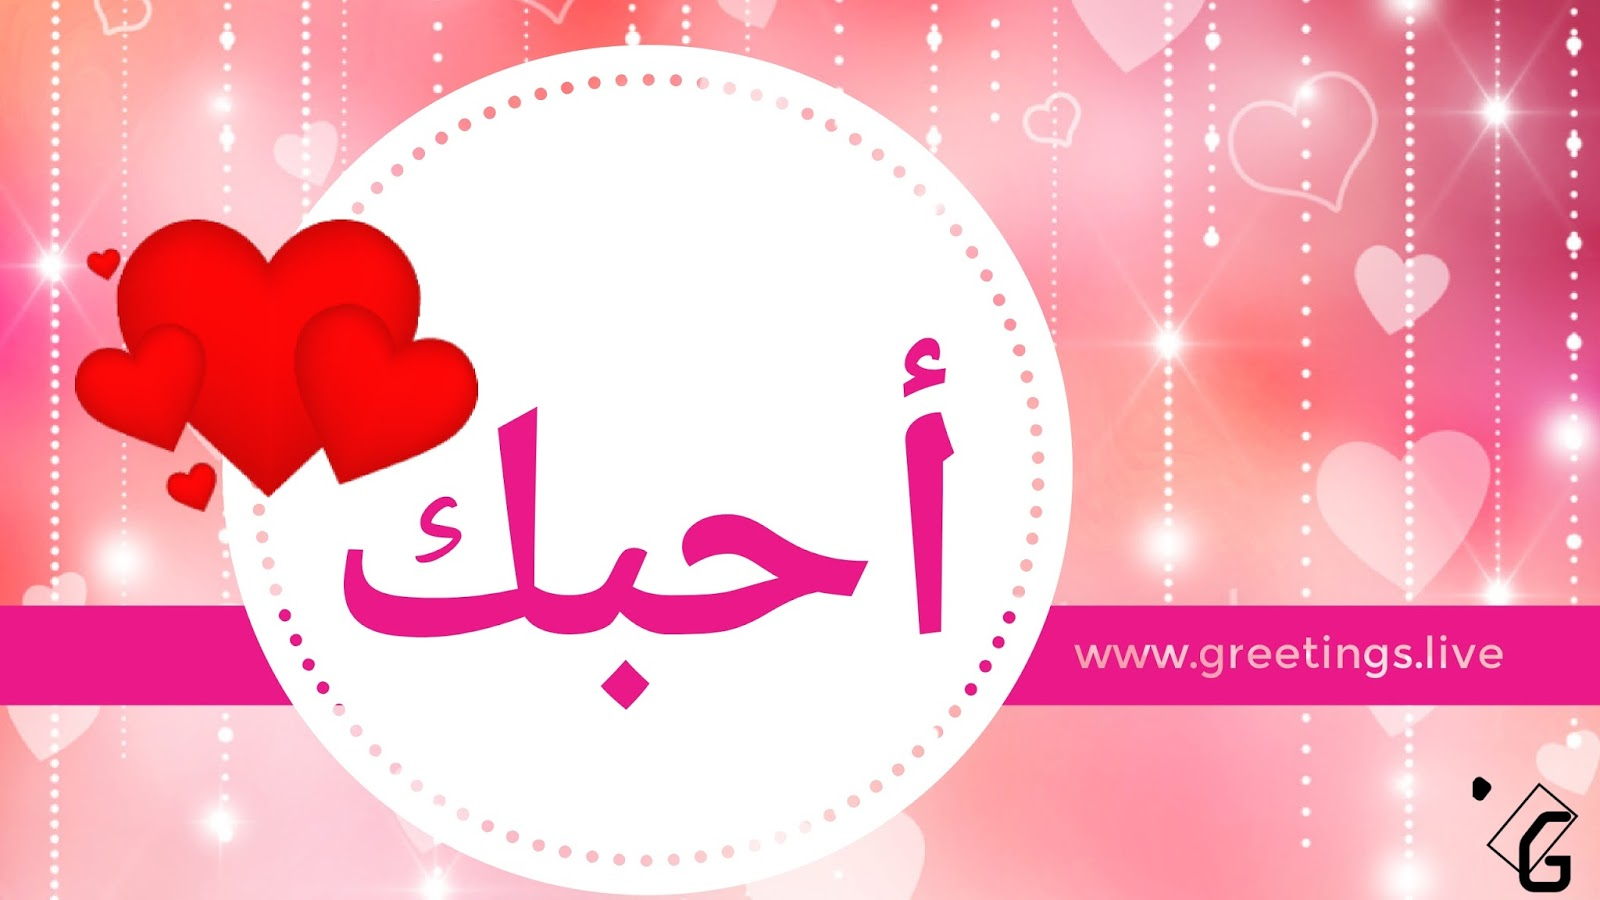 Greetingsve hd images love smile birthday wishes free download i i love you in arabic language kristyandbryce Images